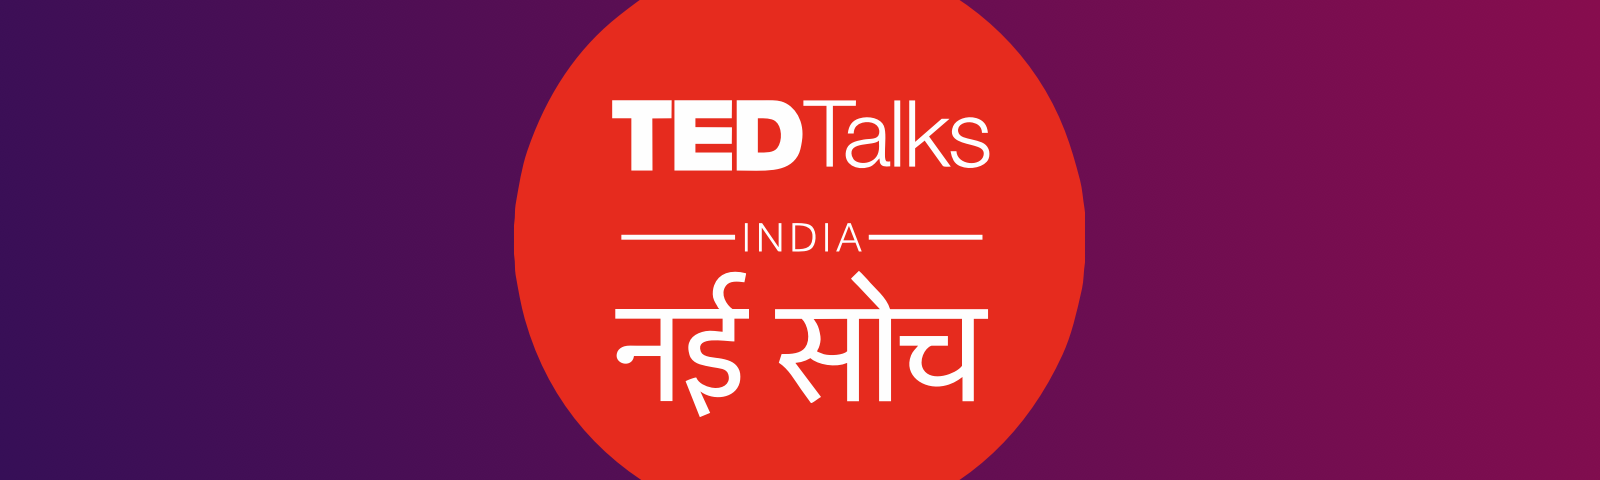 TED Talks India: Nayi Soch